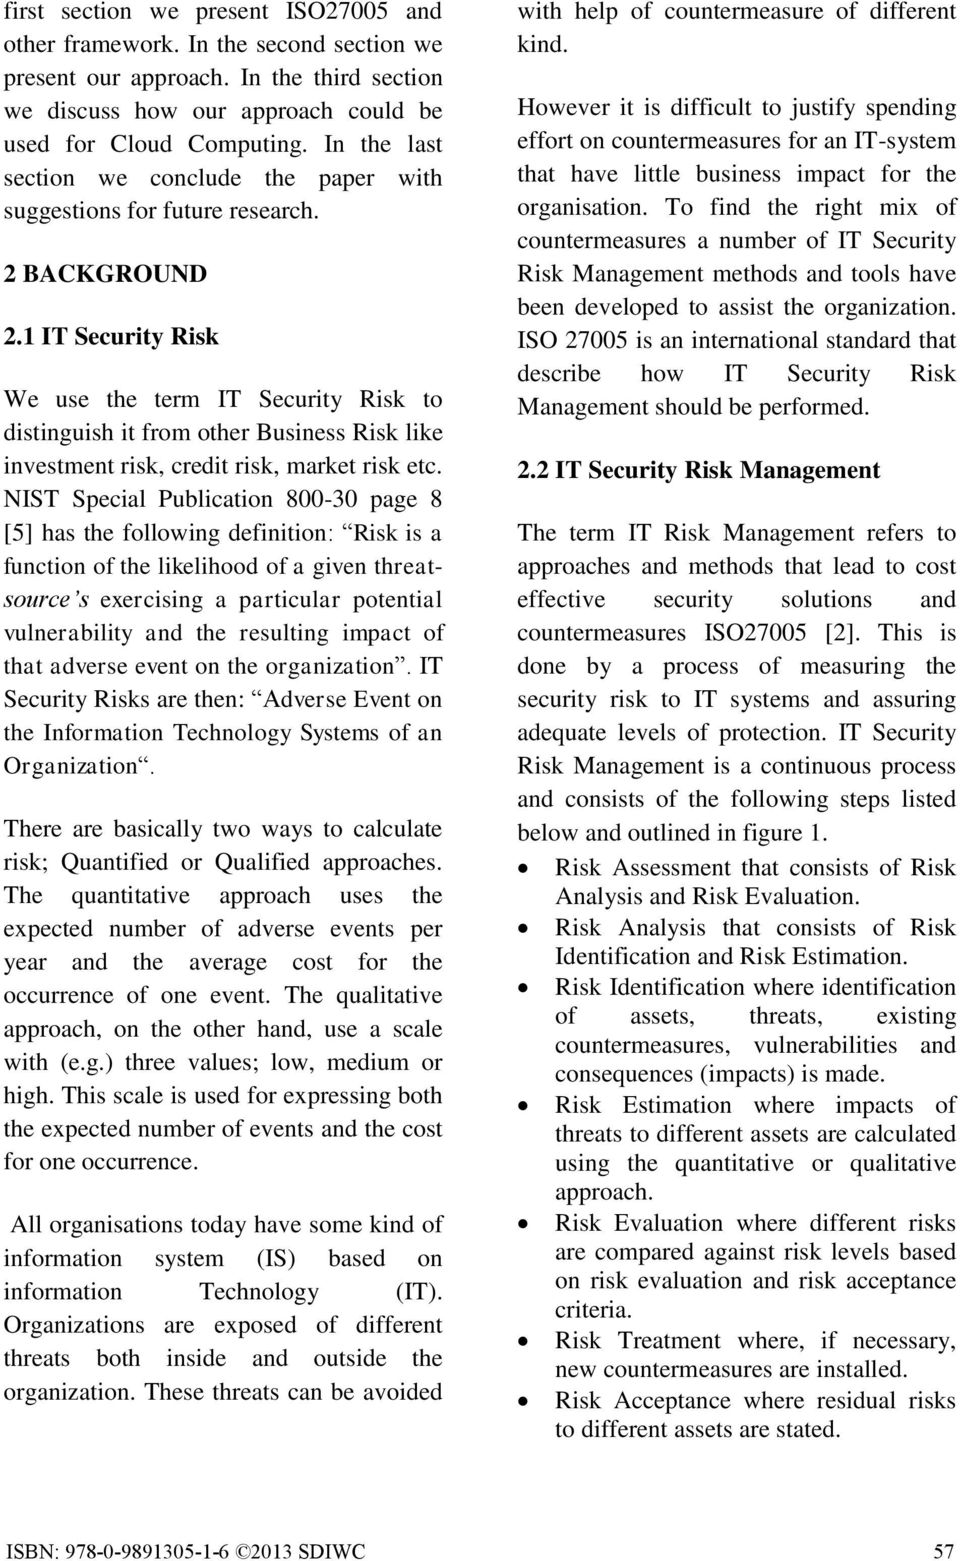 1 IT Security Risk We use the term IT Security Risk to distinguish it from other Business Risk like investment risk, credit risk, market risk etc.